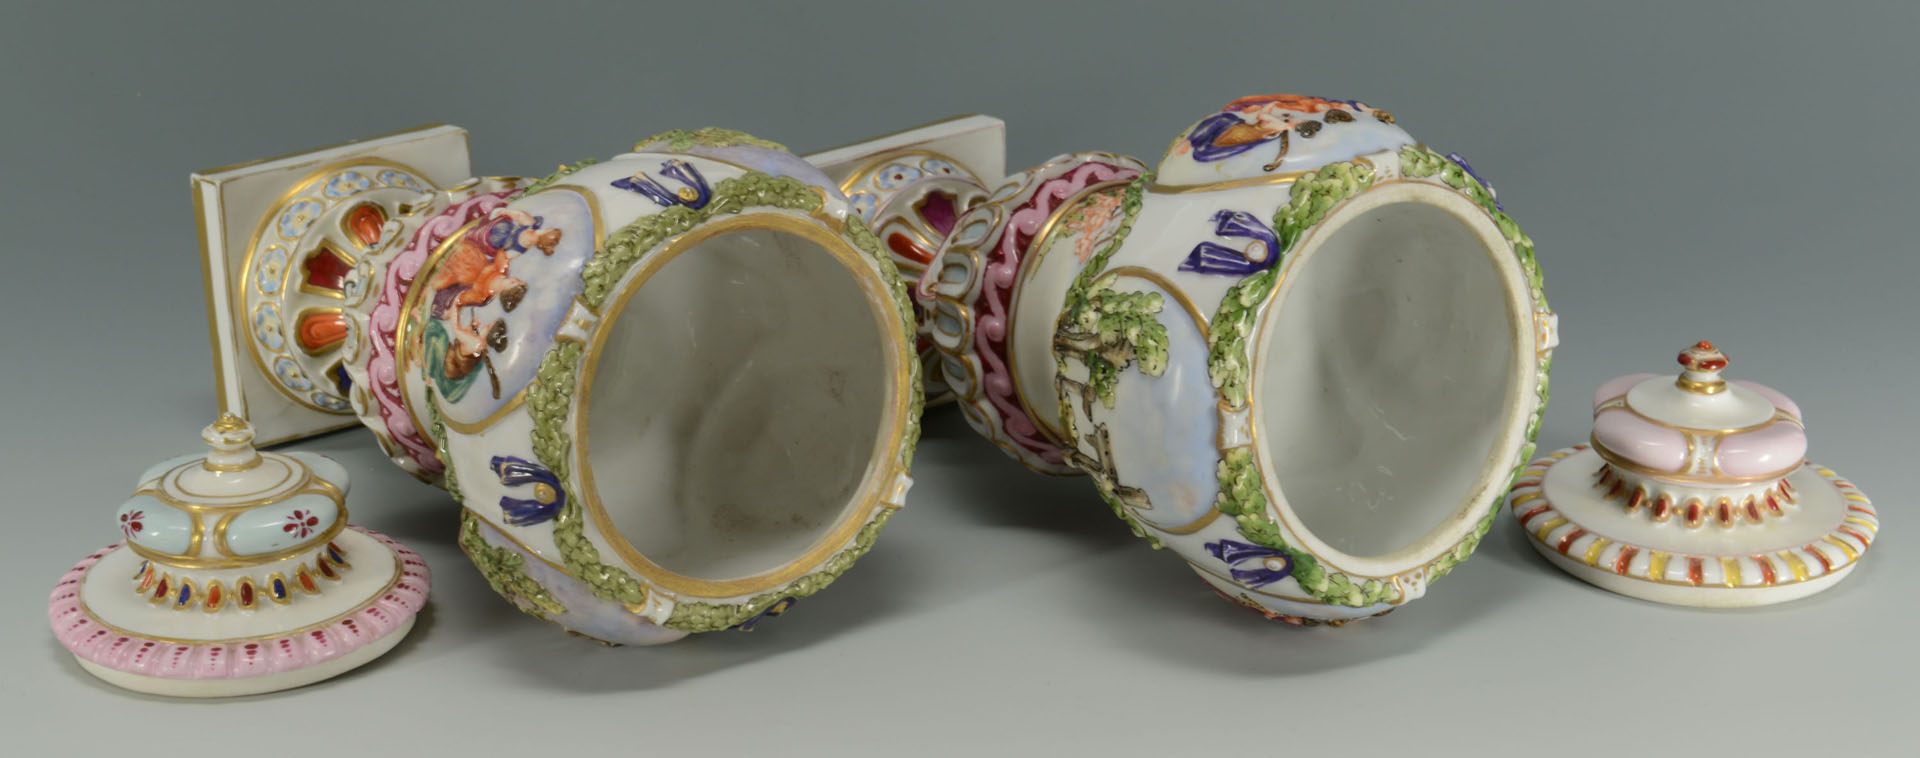 Lot 139: Pair of Covered Capo di Monte Porcelain Urns